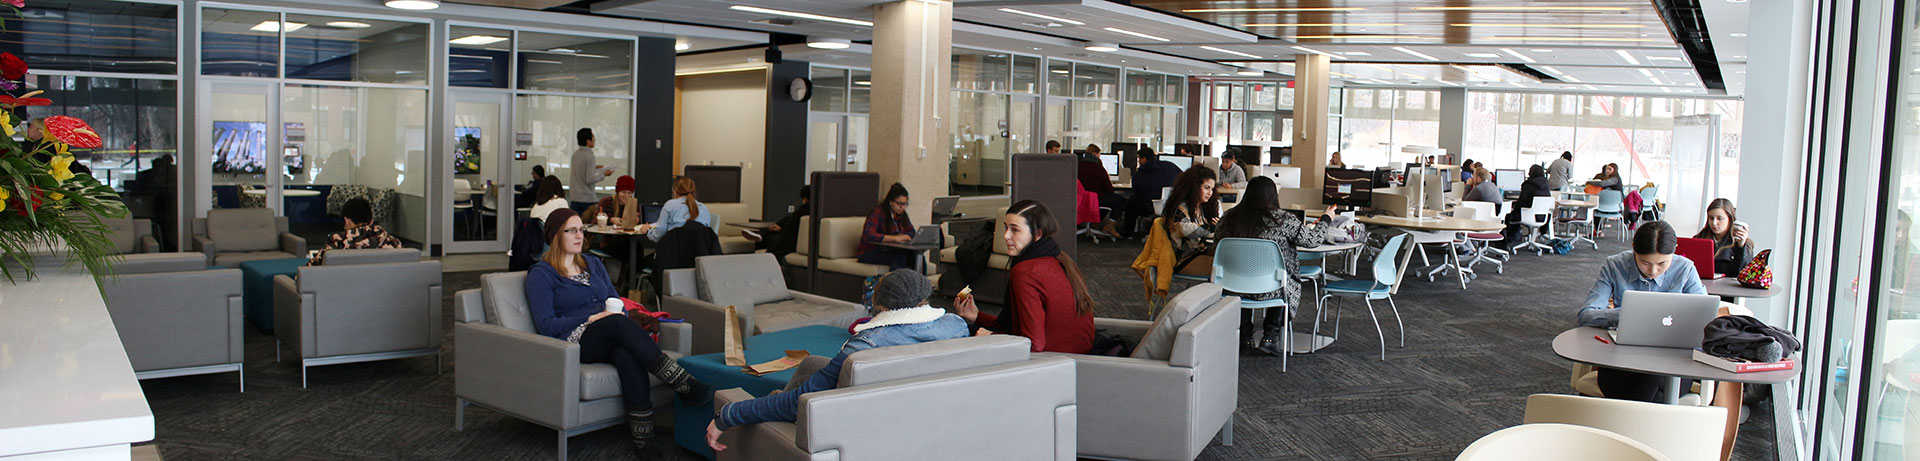 Photo of Learning Commons